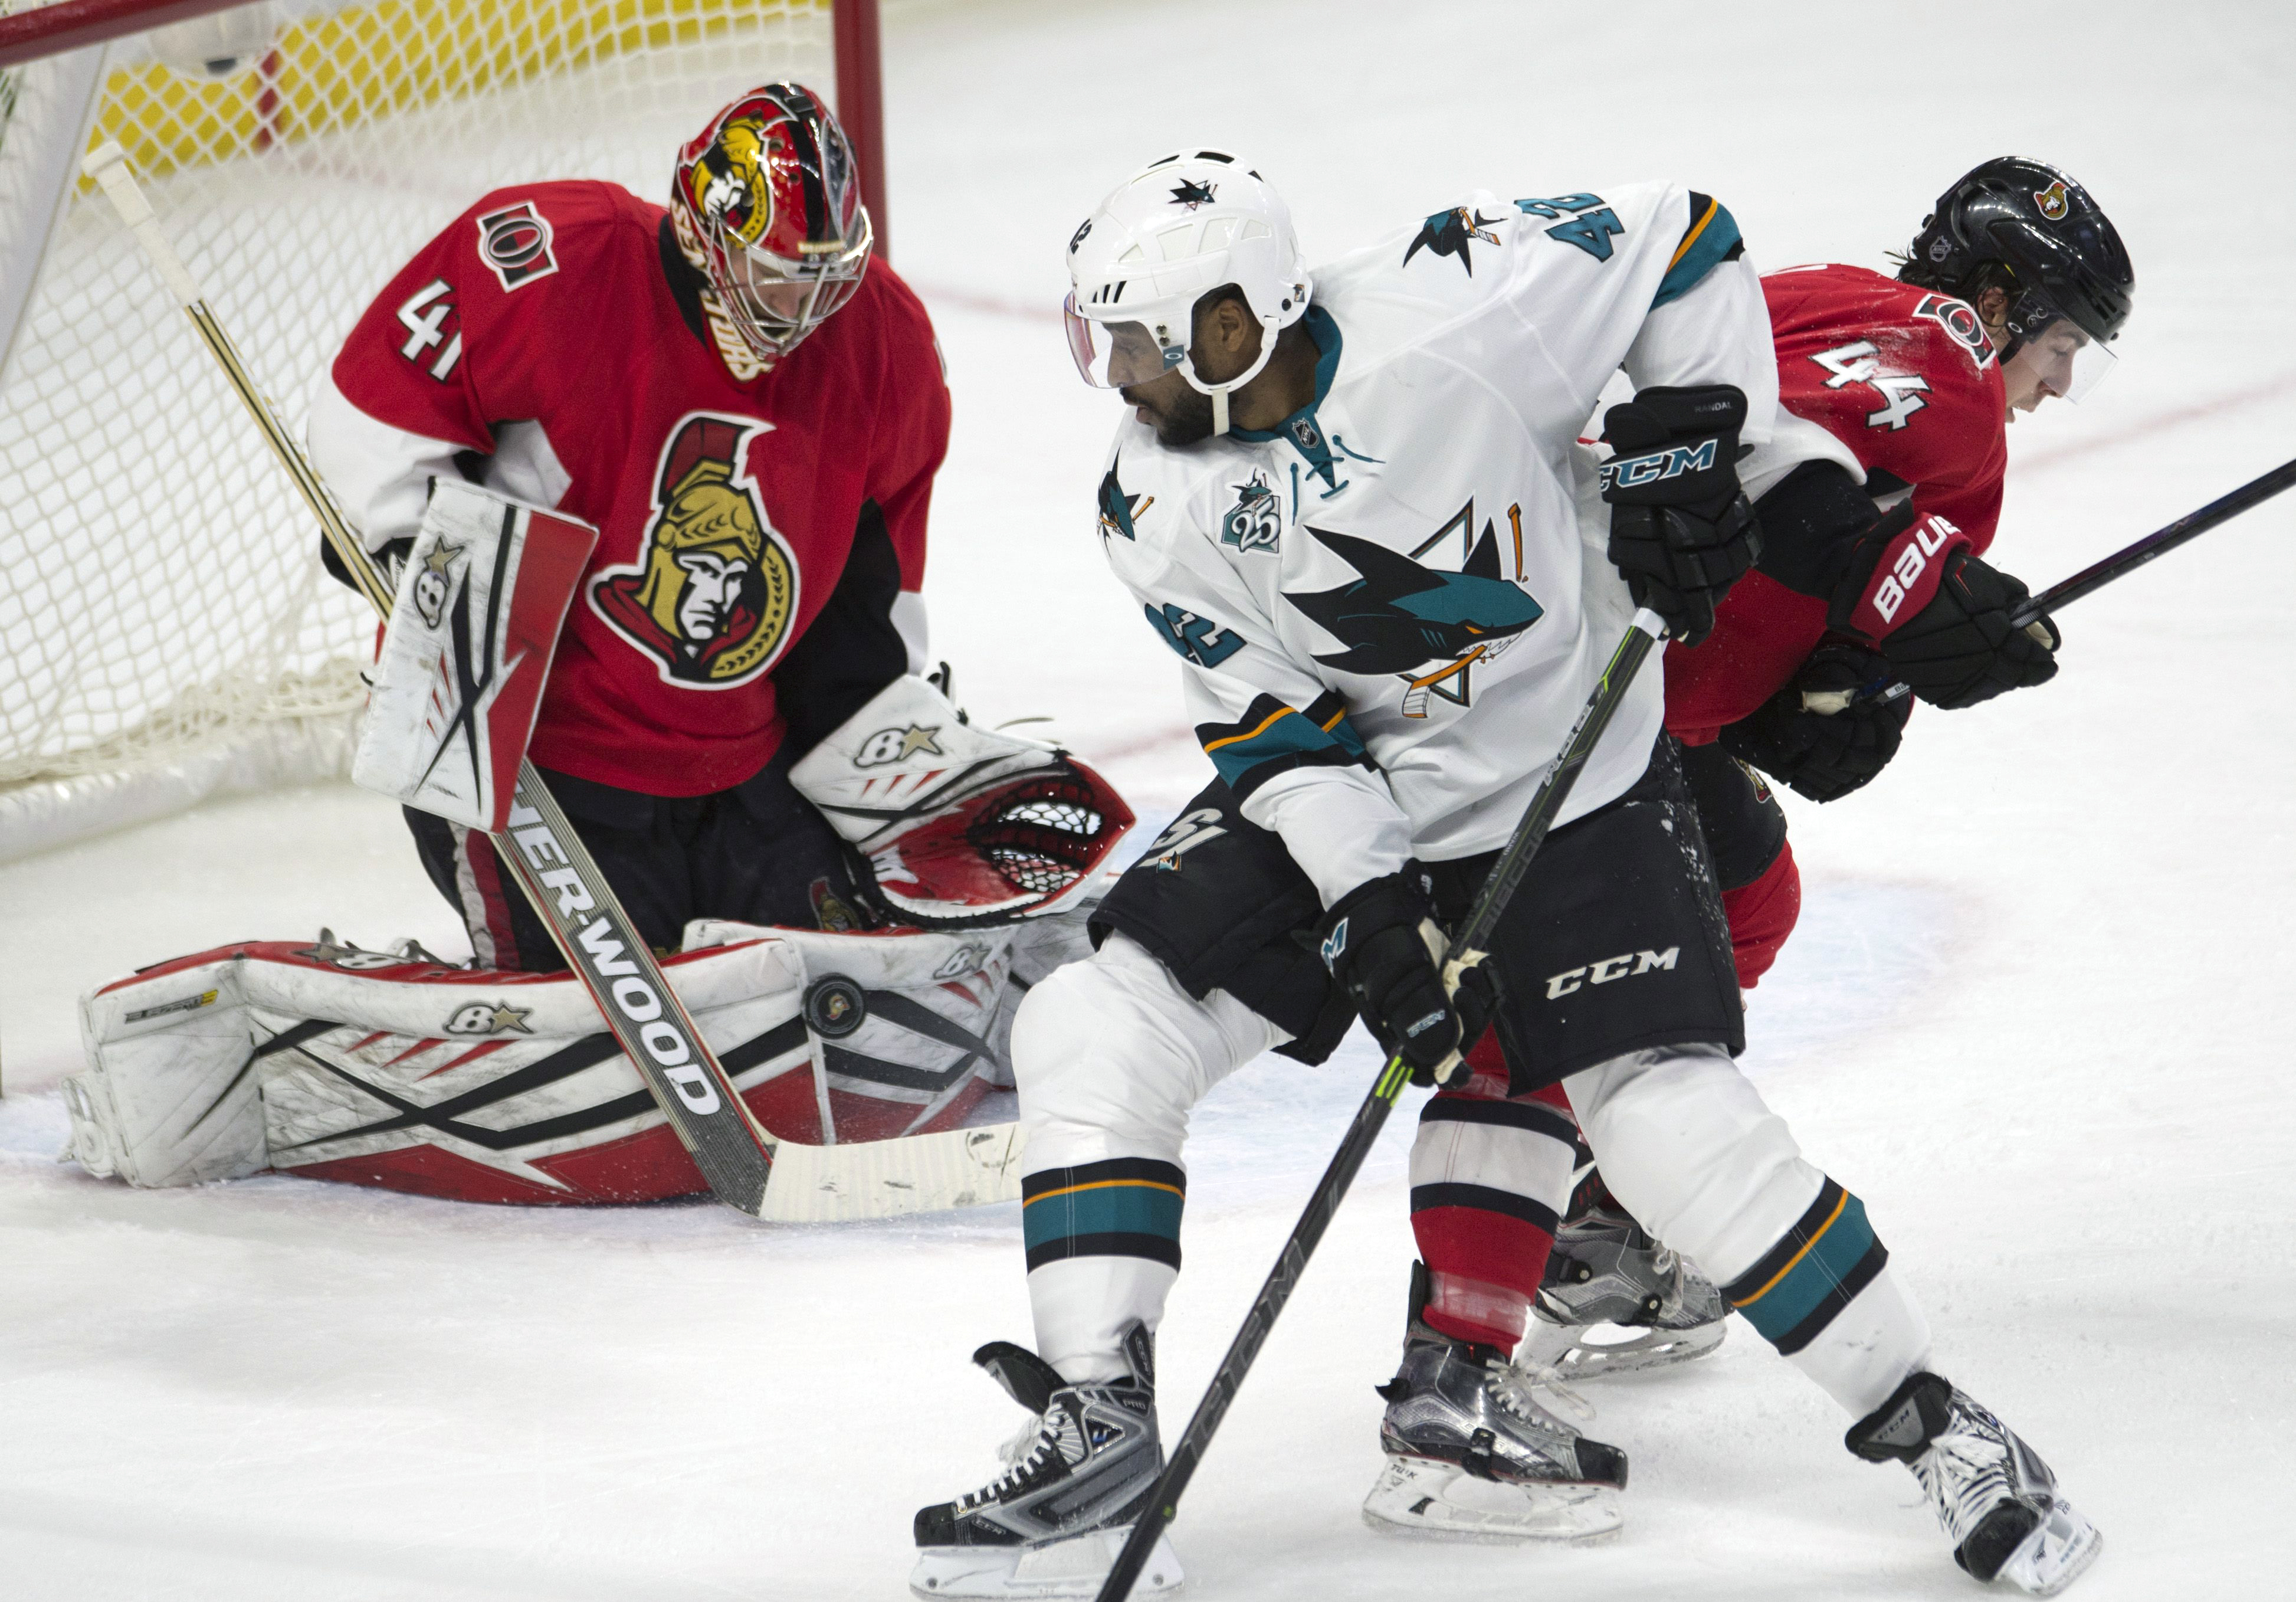 Ottawa Senators goalie Craig Anderson, left, makes a save as San Jose Sharks right wing Joel Ward, center, battles in front of the net with Senators center Jean-Gabriel Pageau during second-period NHL hockey game action Friday, Dec. 18, 2015, in Ottawa, O